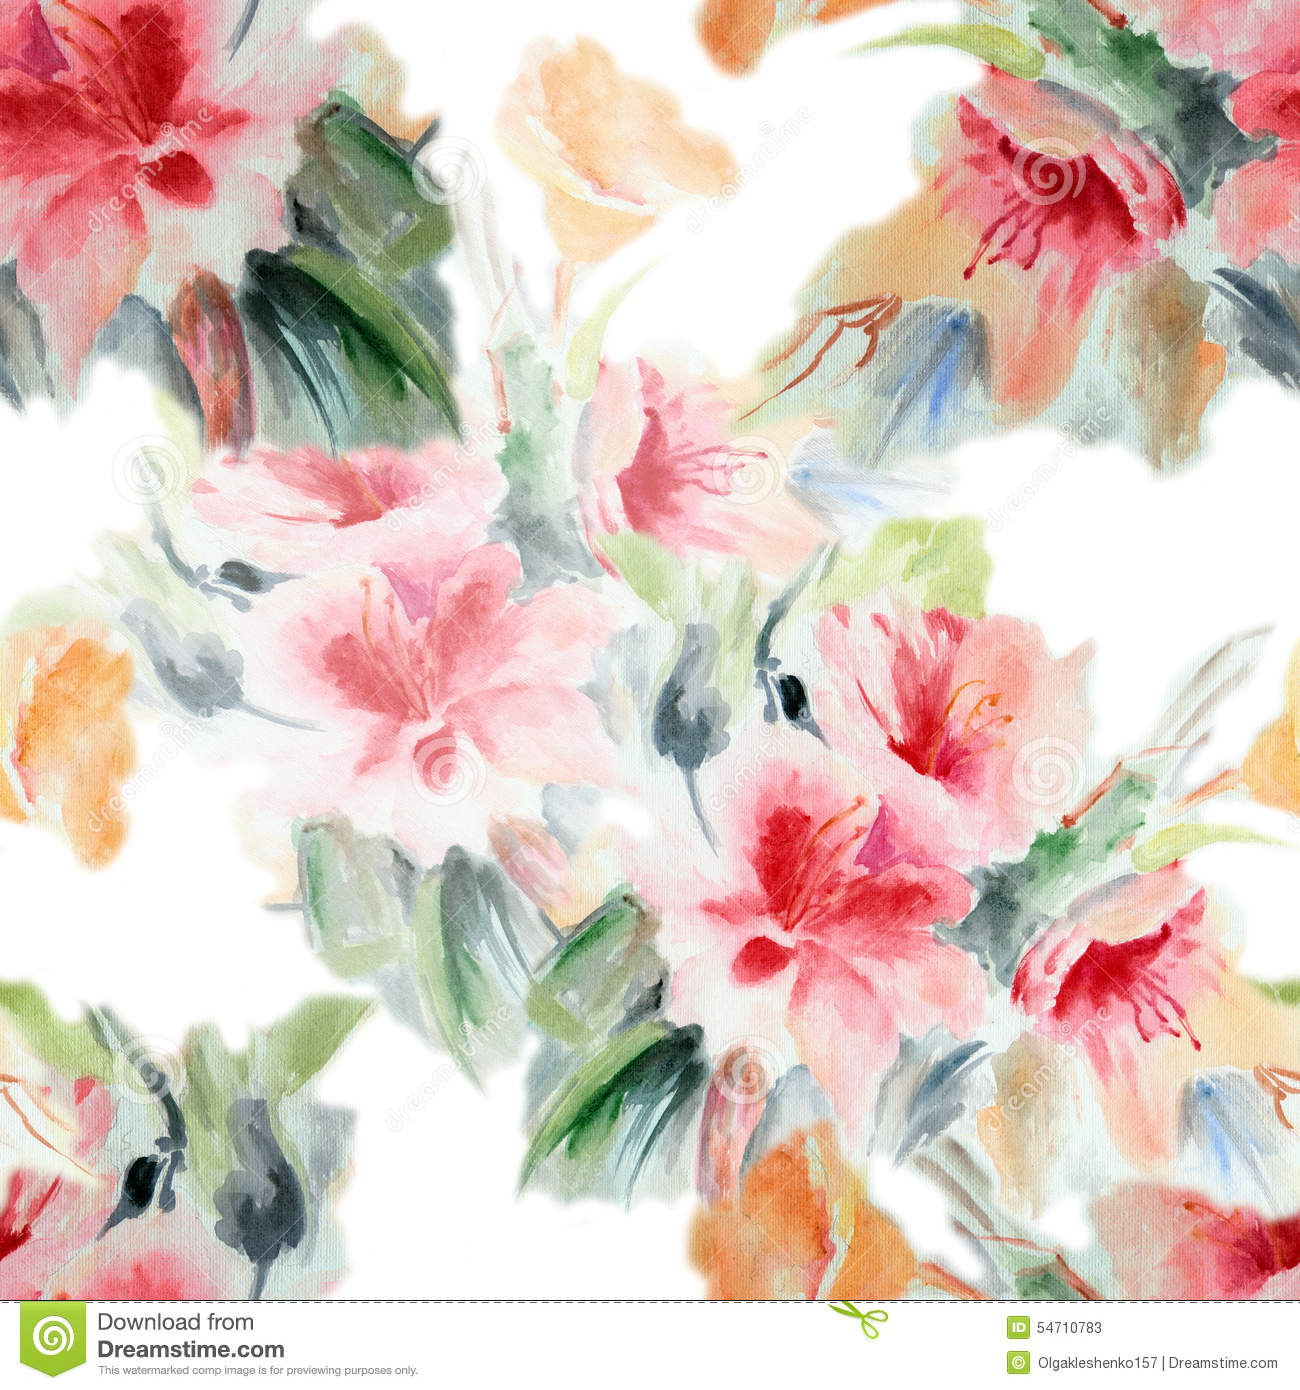 Chinese rose flower bouquet watercolor pattern seamless handmade white